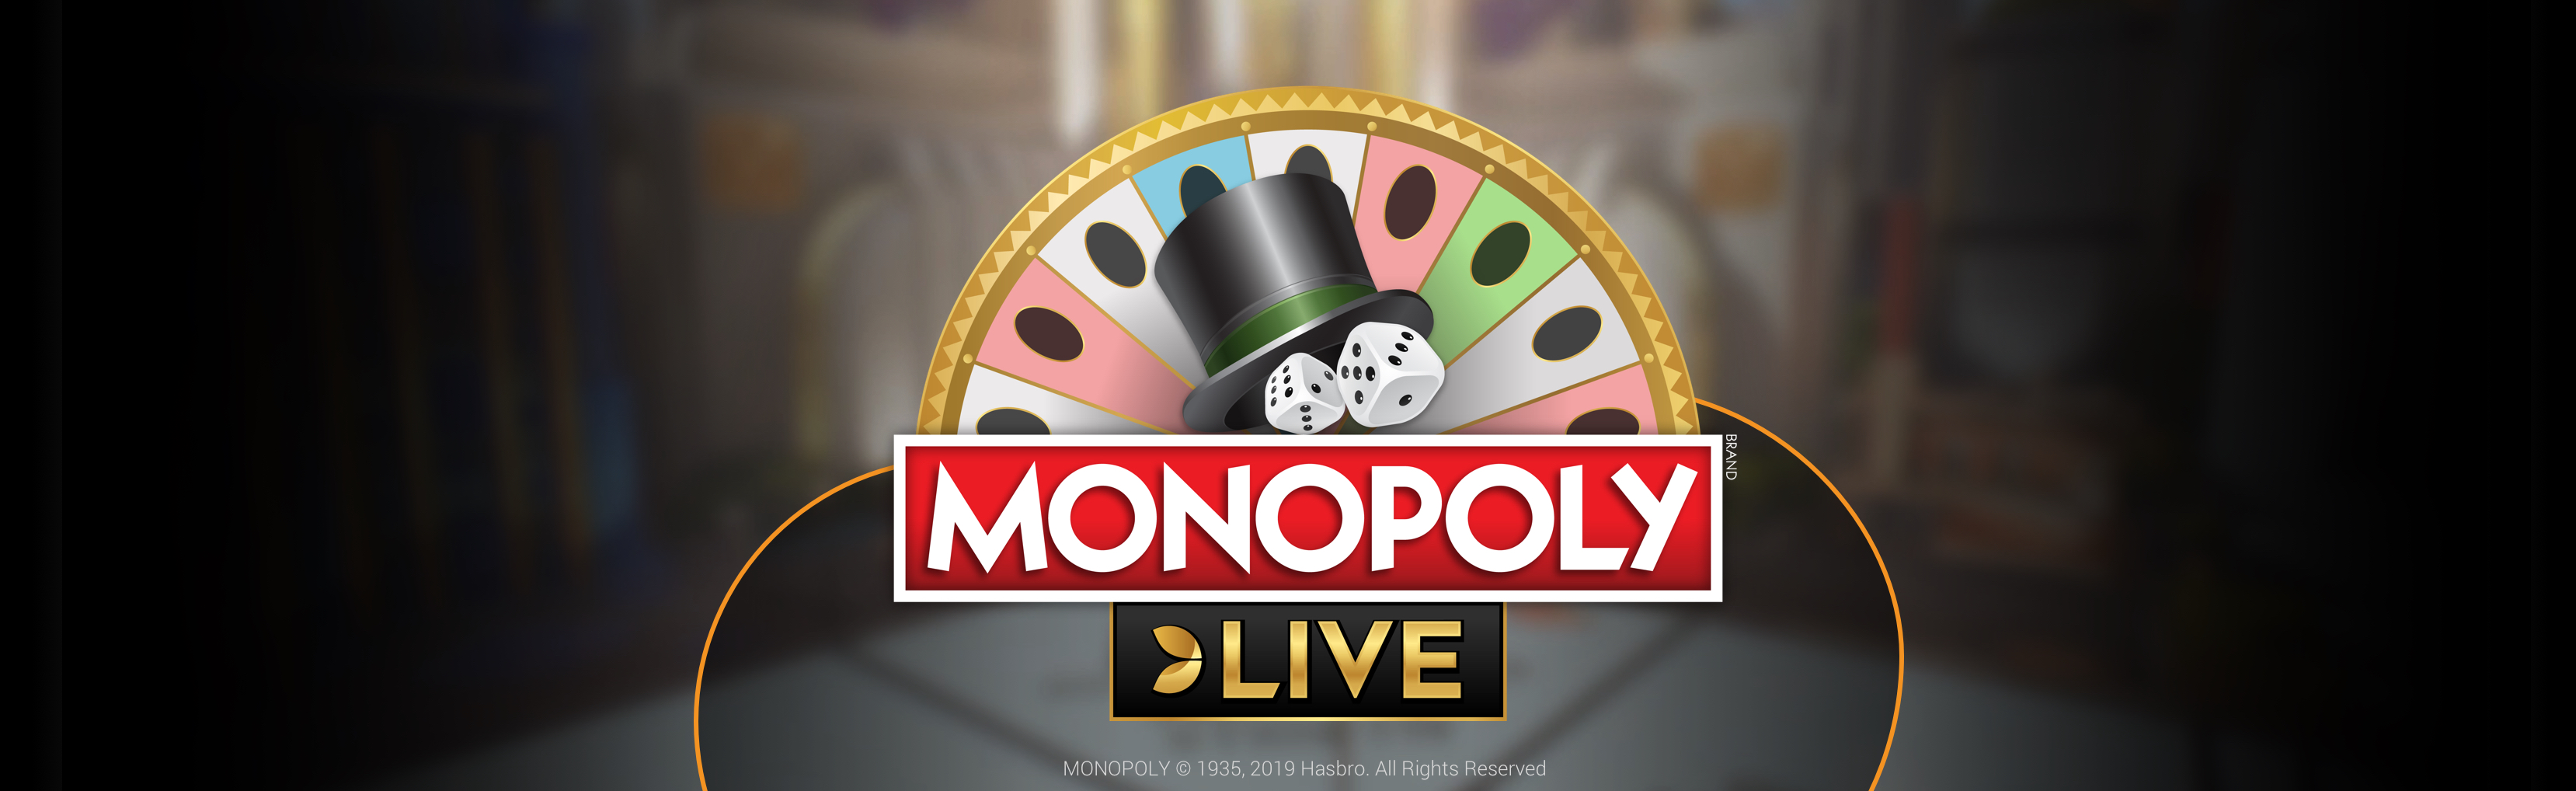 MONOPOLY Live, Deal or No Deal and more at Cloudbet